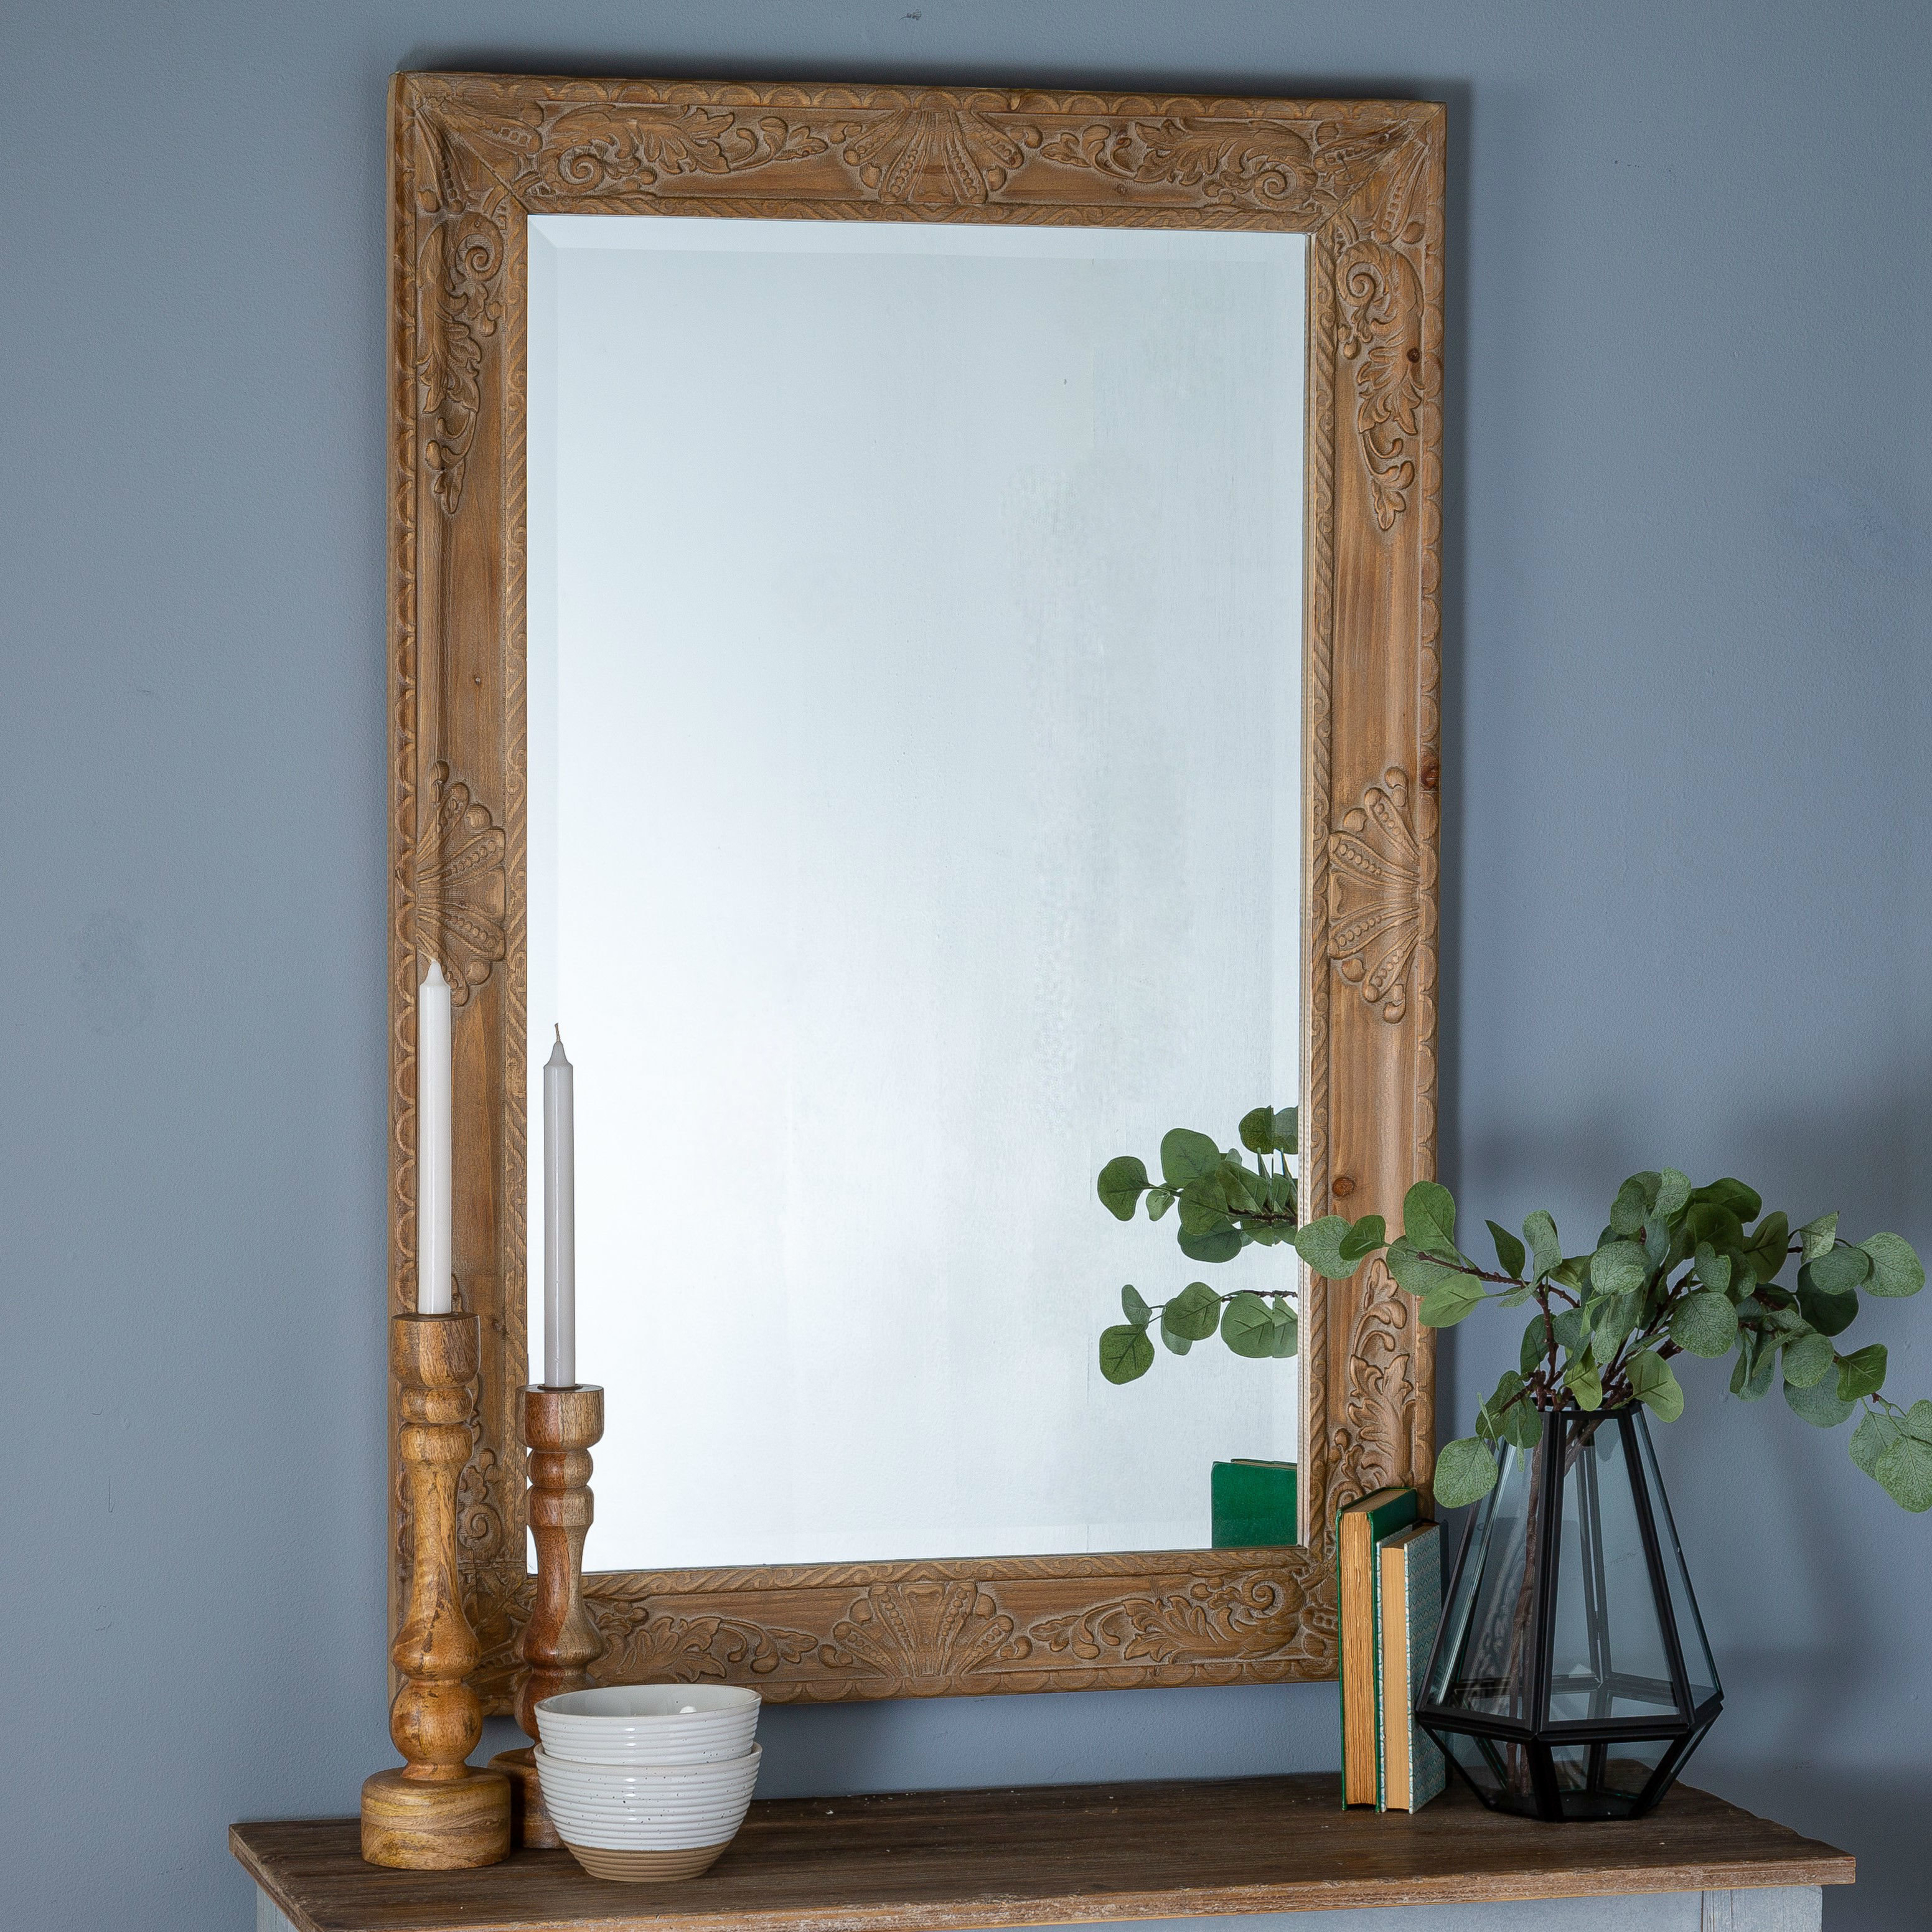 Most Popular Romain Accent Mirrors Regarding Stier Accent Mirror In 2019 For The House Mirror Decor Mudroom (Gallery 20 of 20)